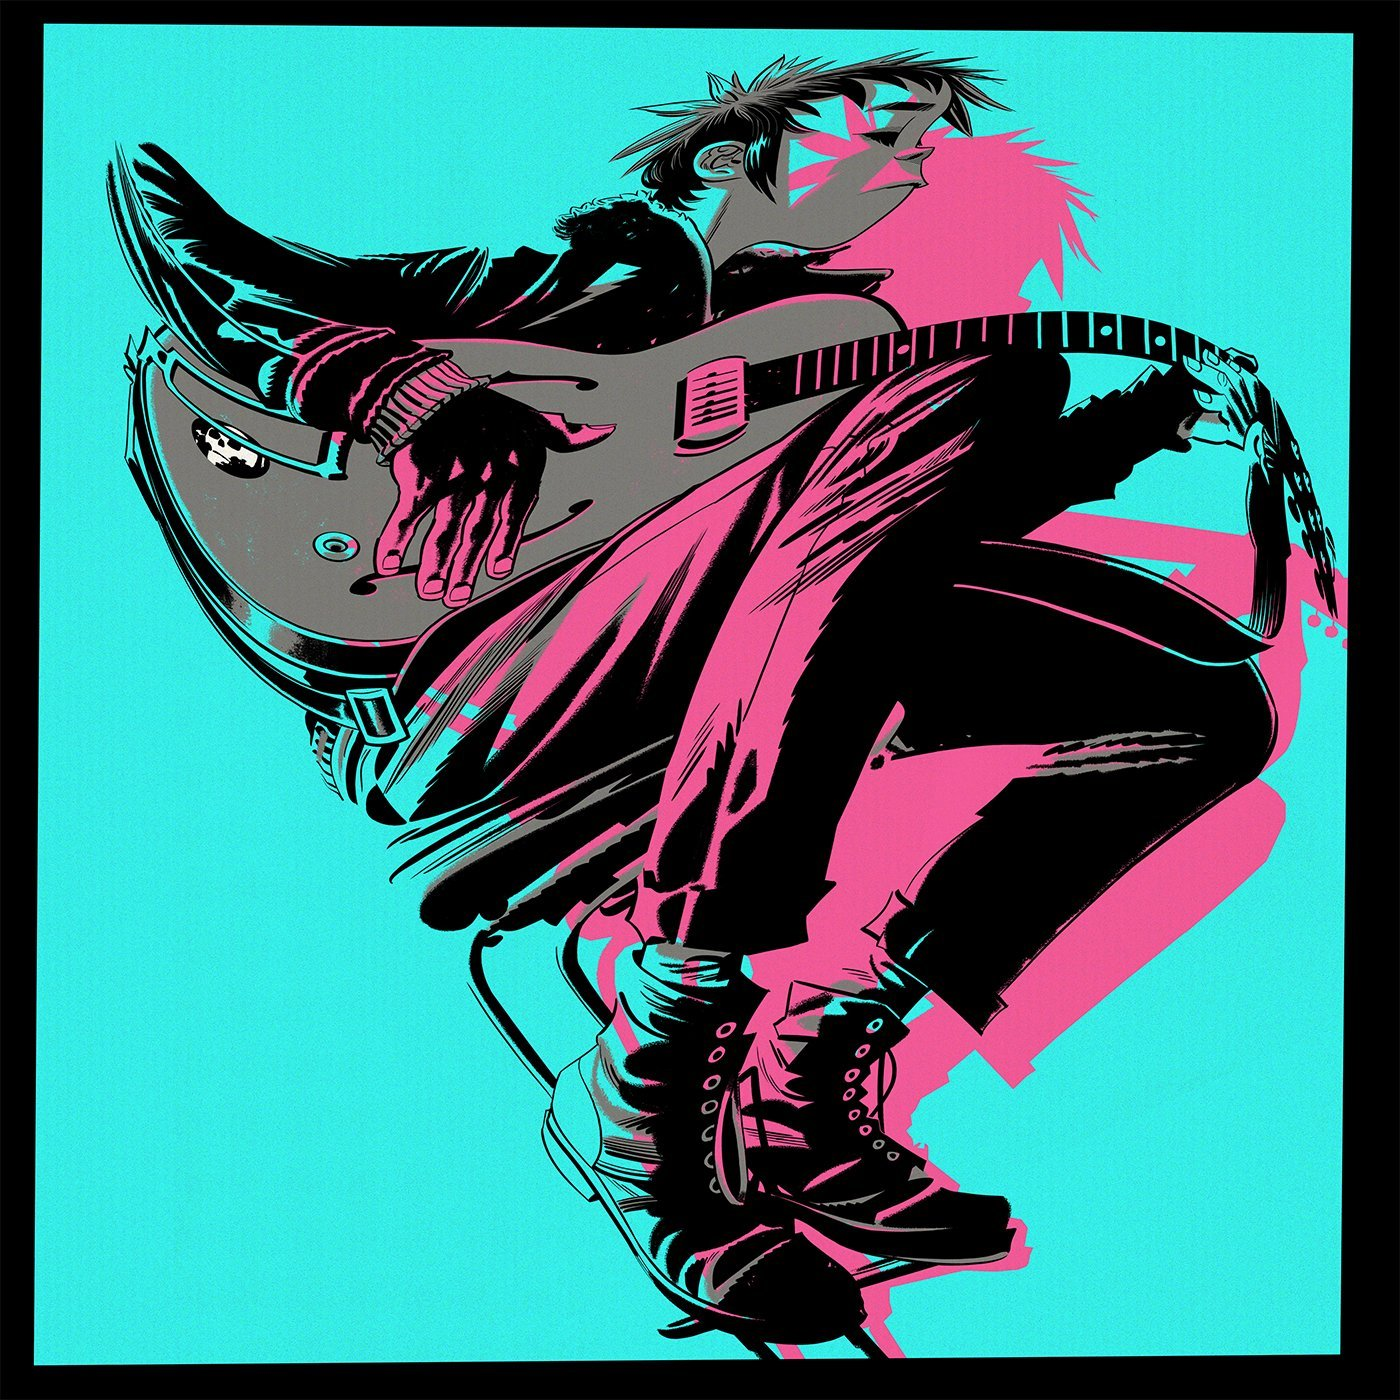 Gorillaz - Now Now (Pict)